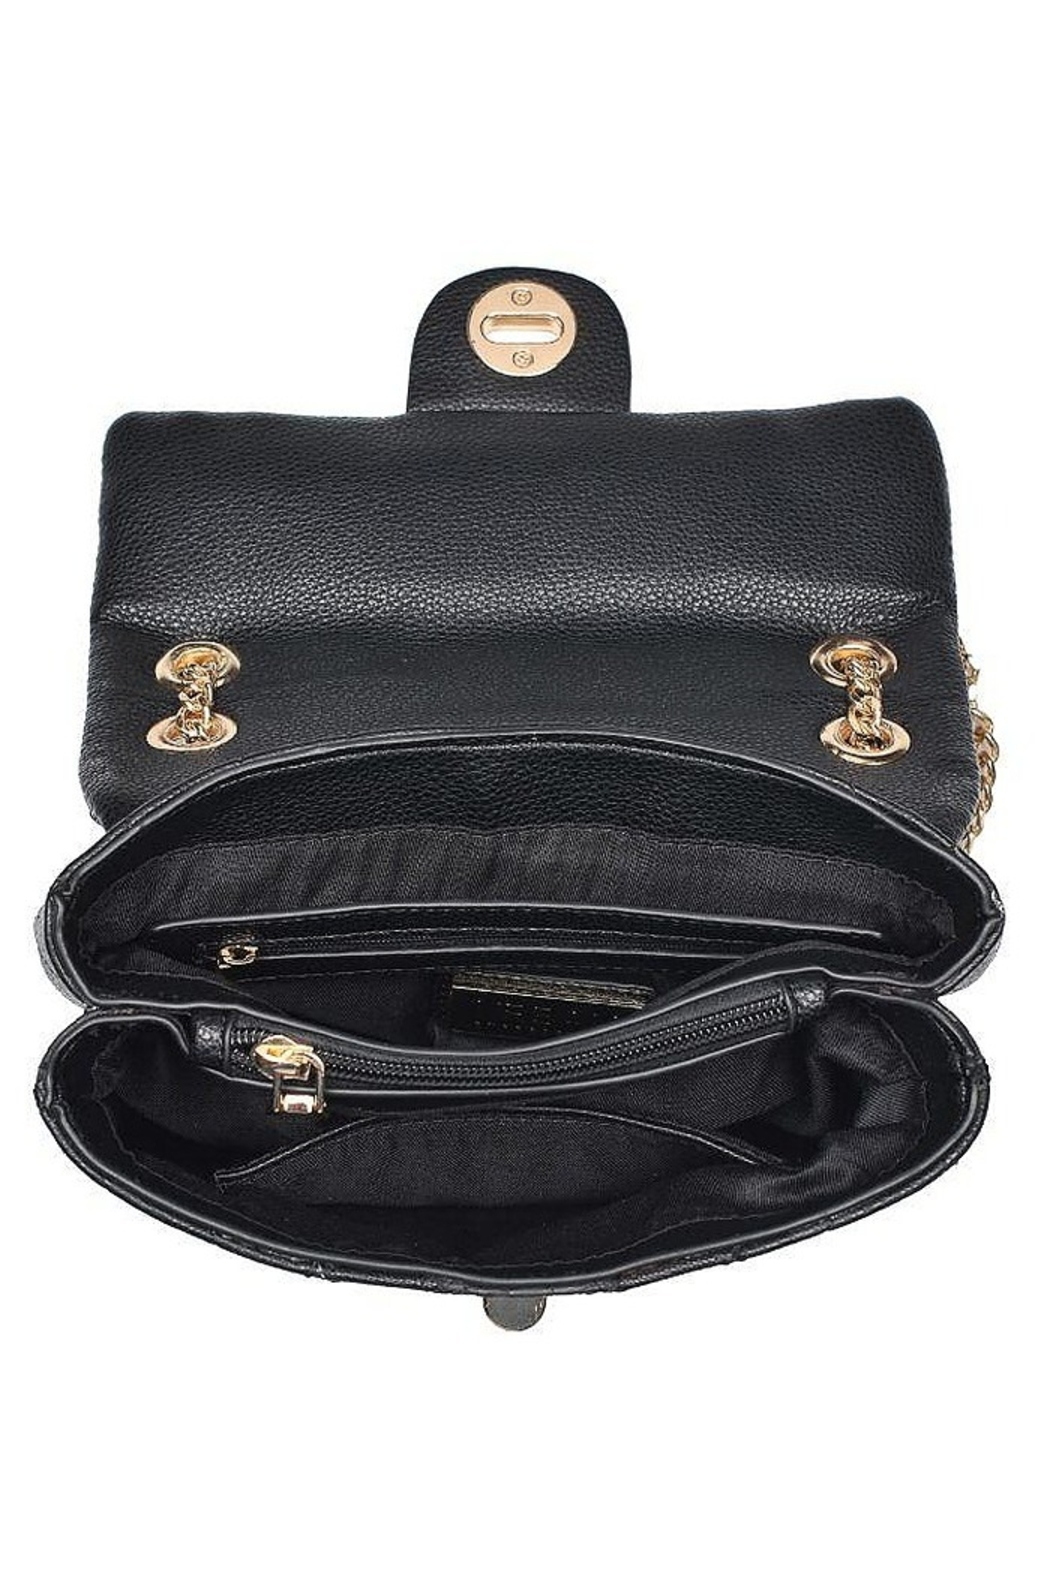 Urban Expressions Kaiden Crossbody - Front Full Image